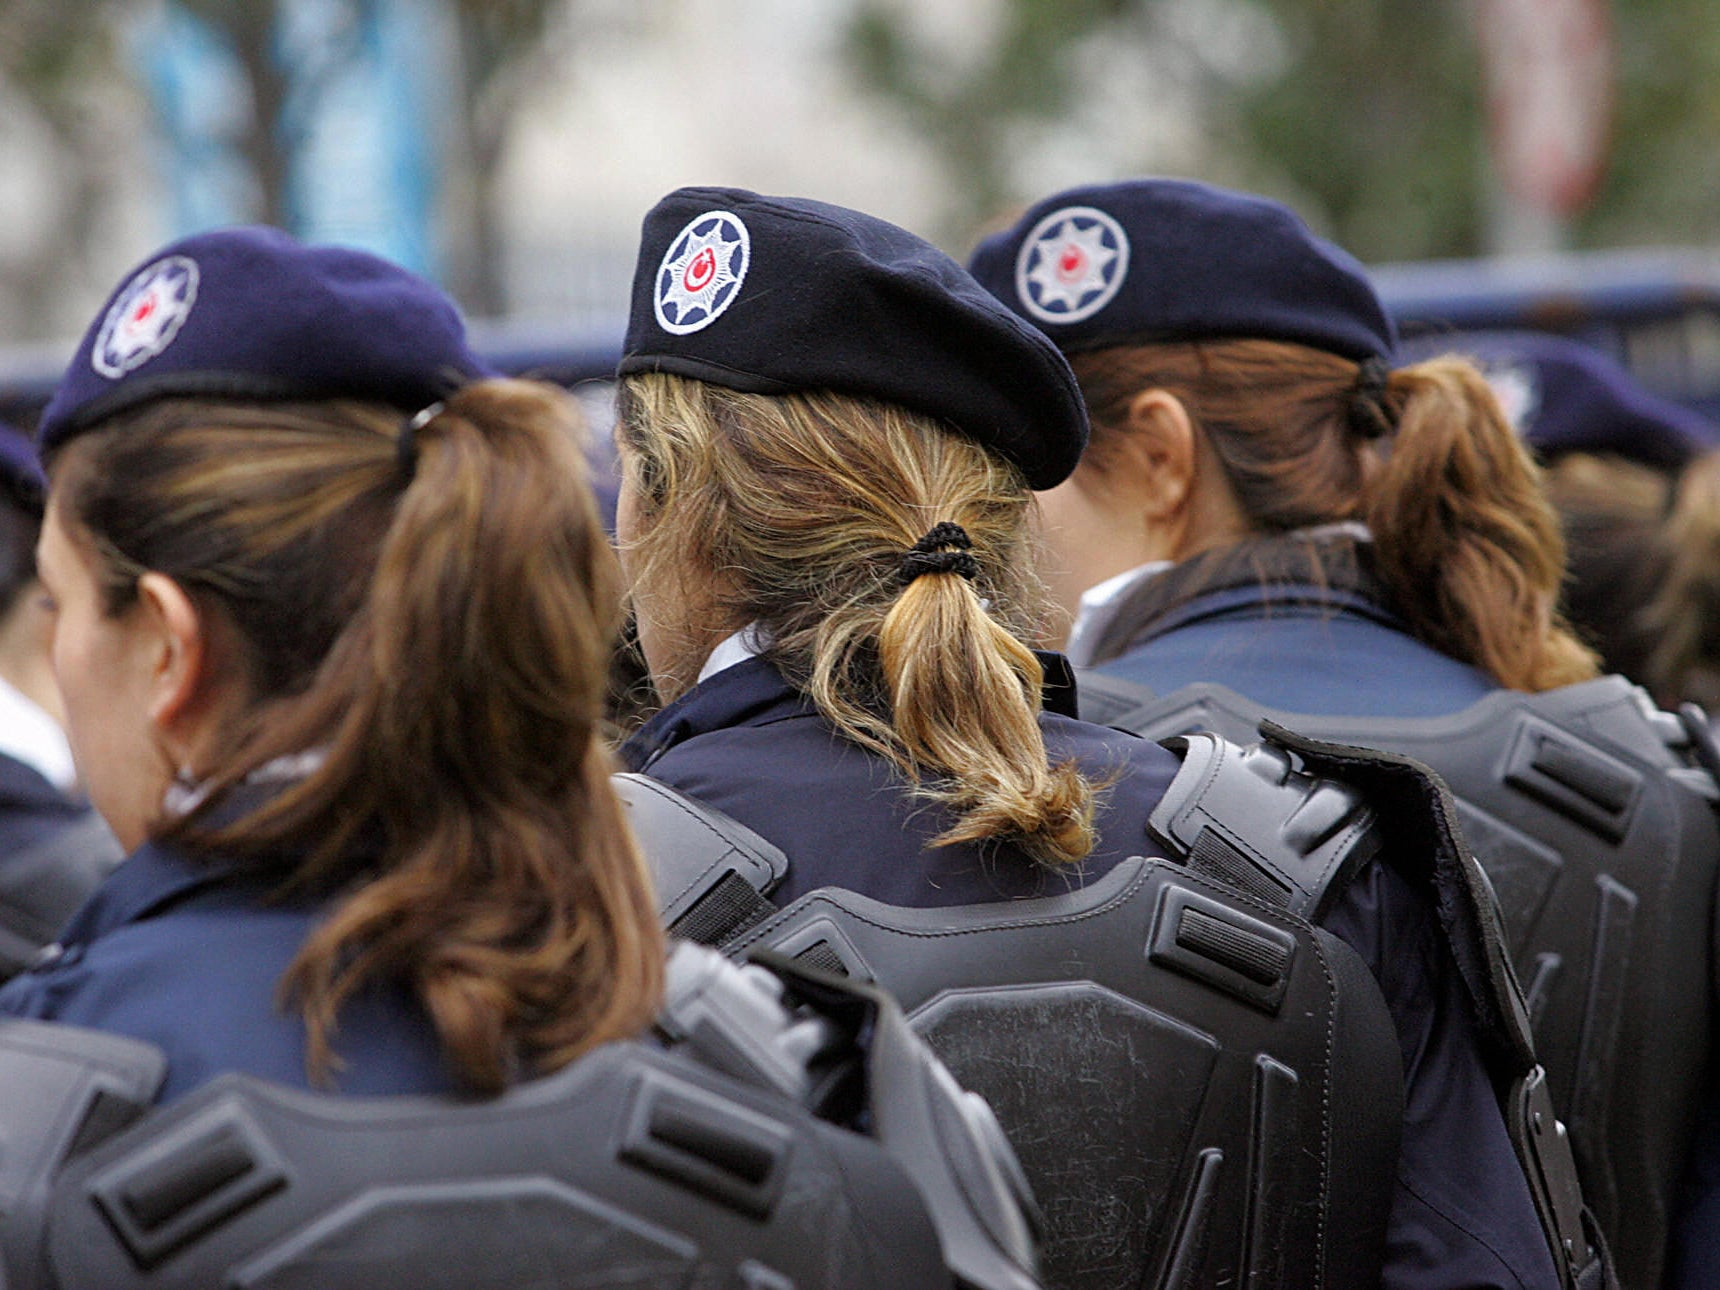 Turkey approves hijab as part of official police uniform